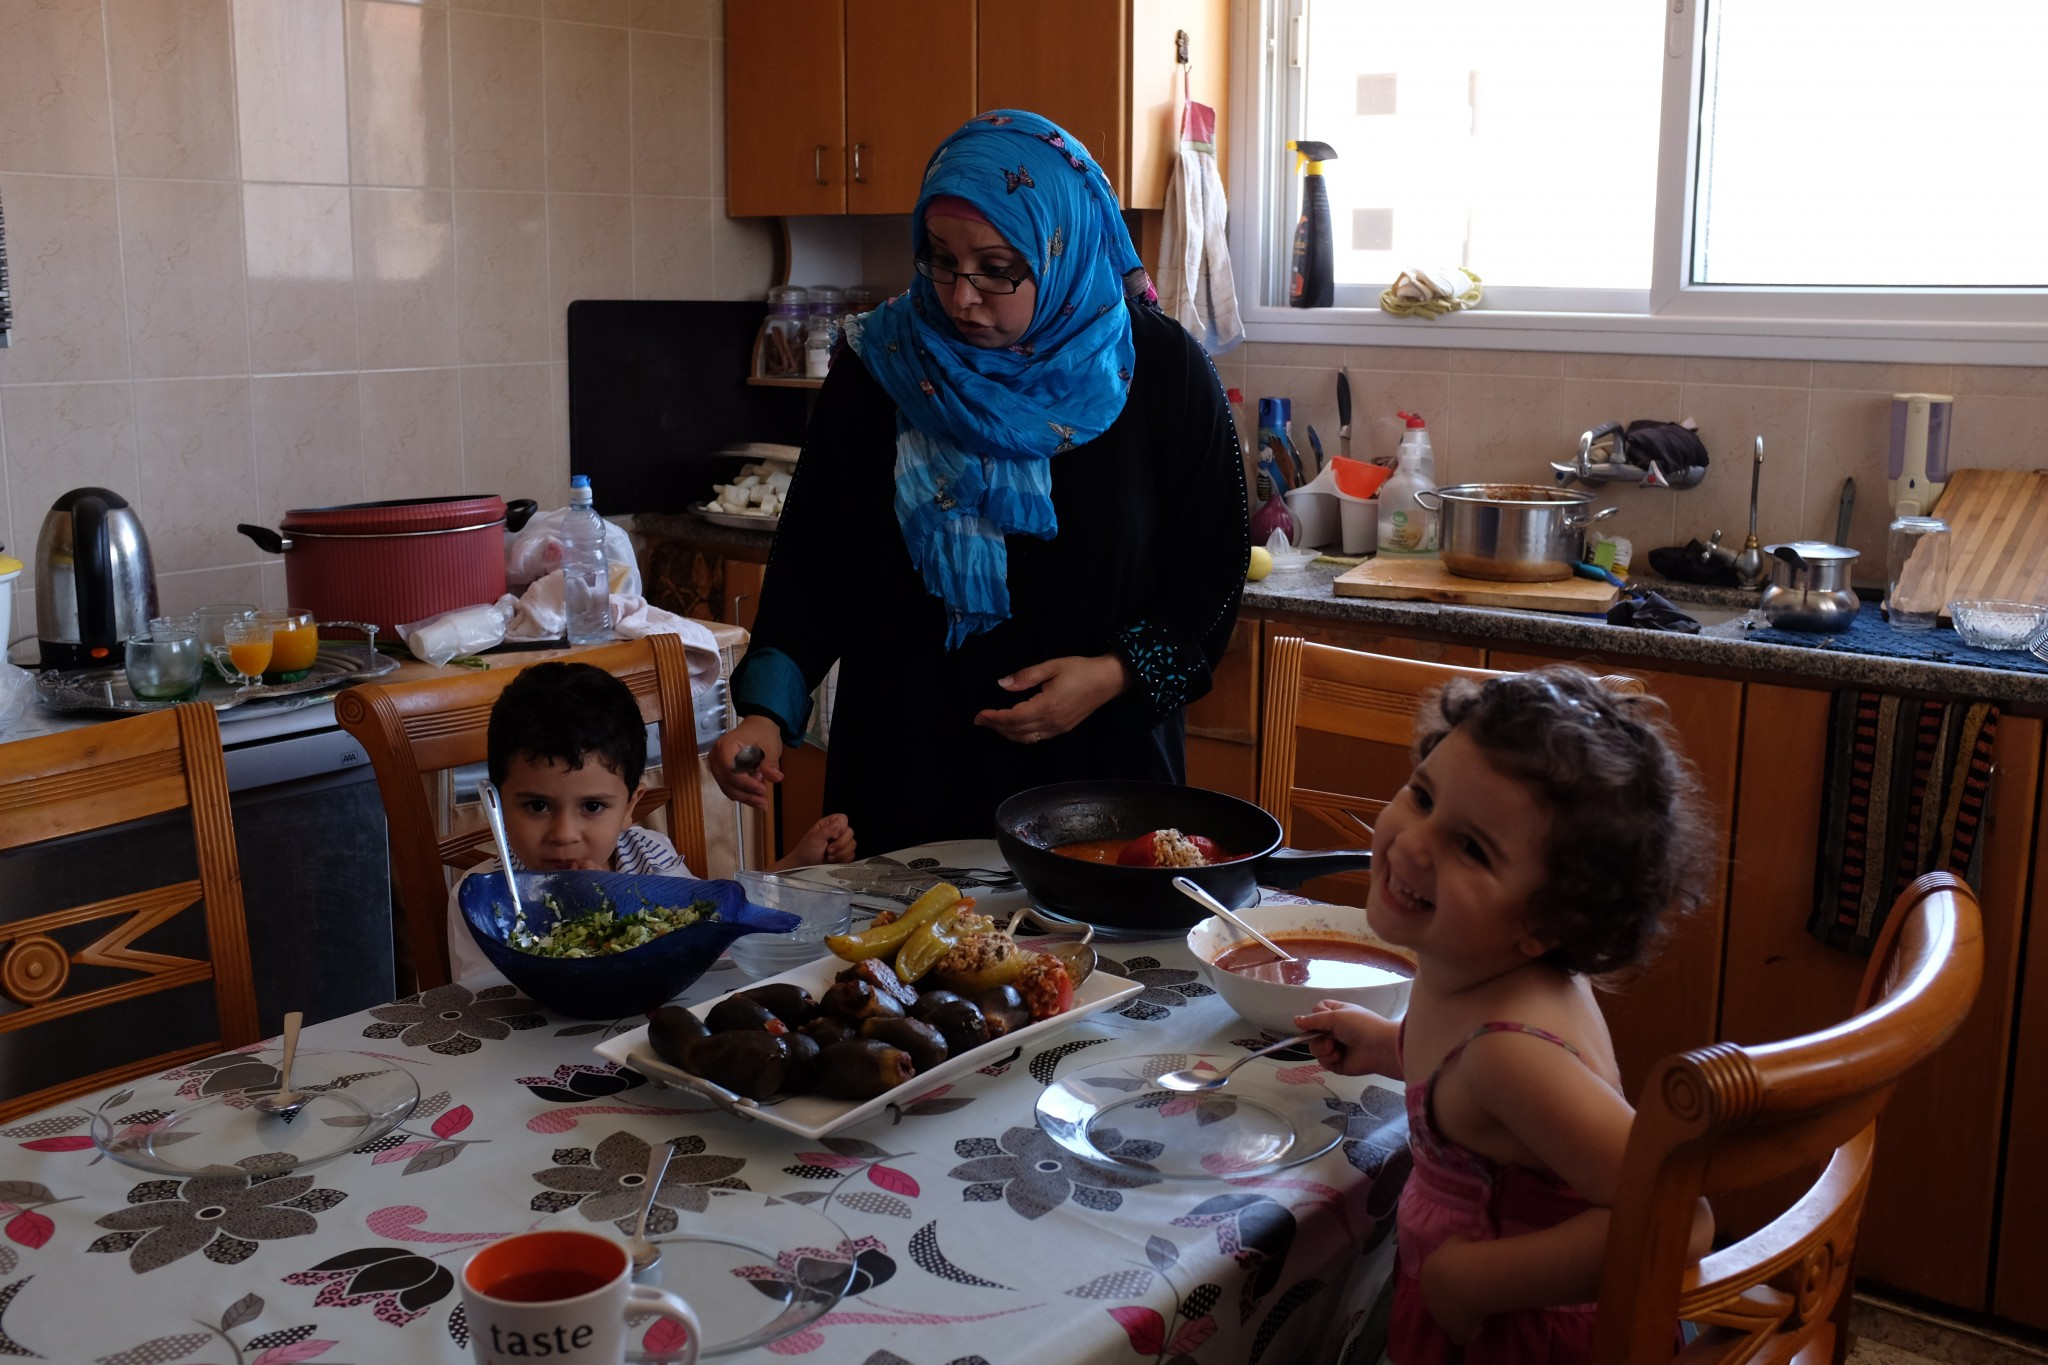 Samah Zahalka (Abu-Sido), daughter of Abed and Yusra, with her children Zina and Abed Al-Rahman at home in Jenin. Photo: Alex Levac